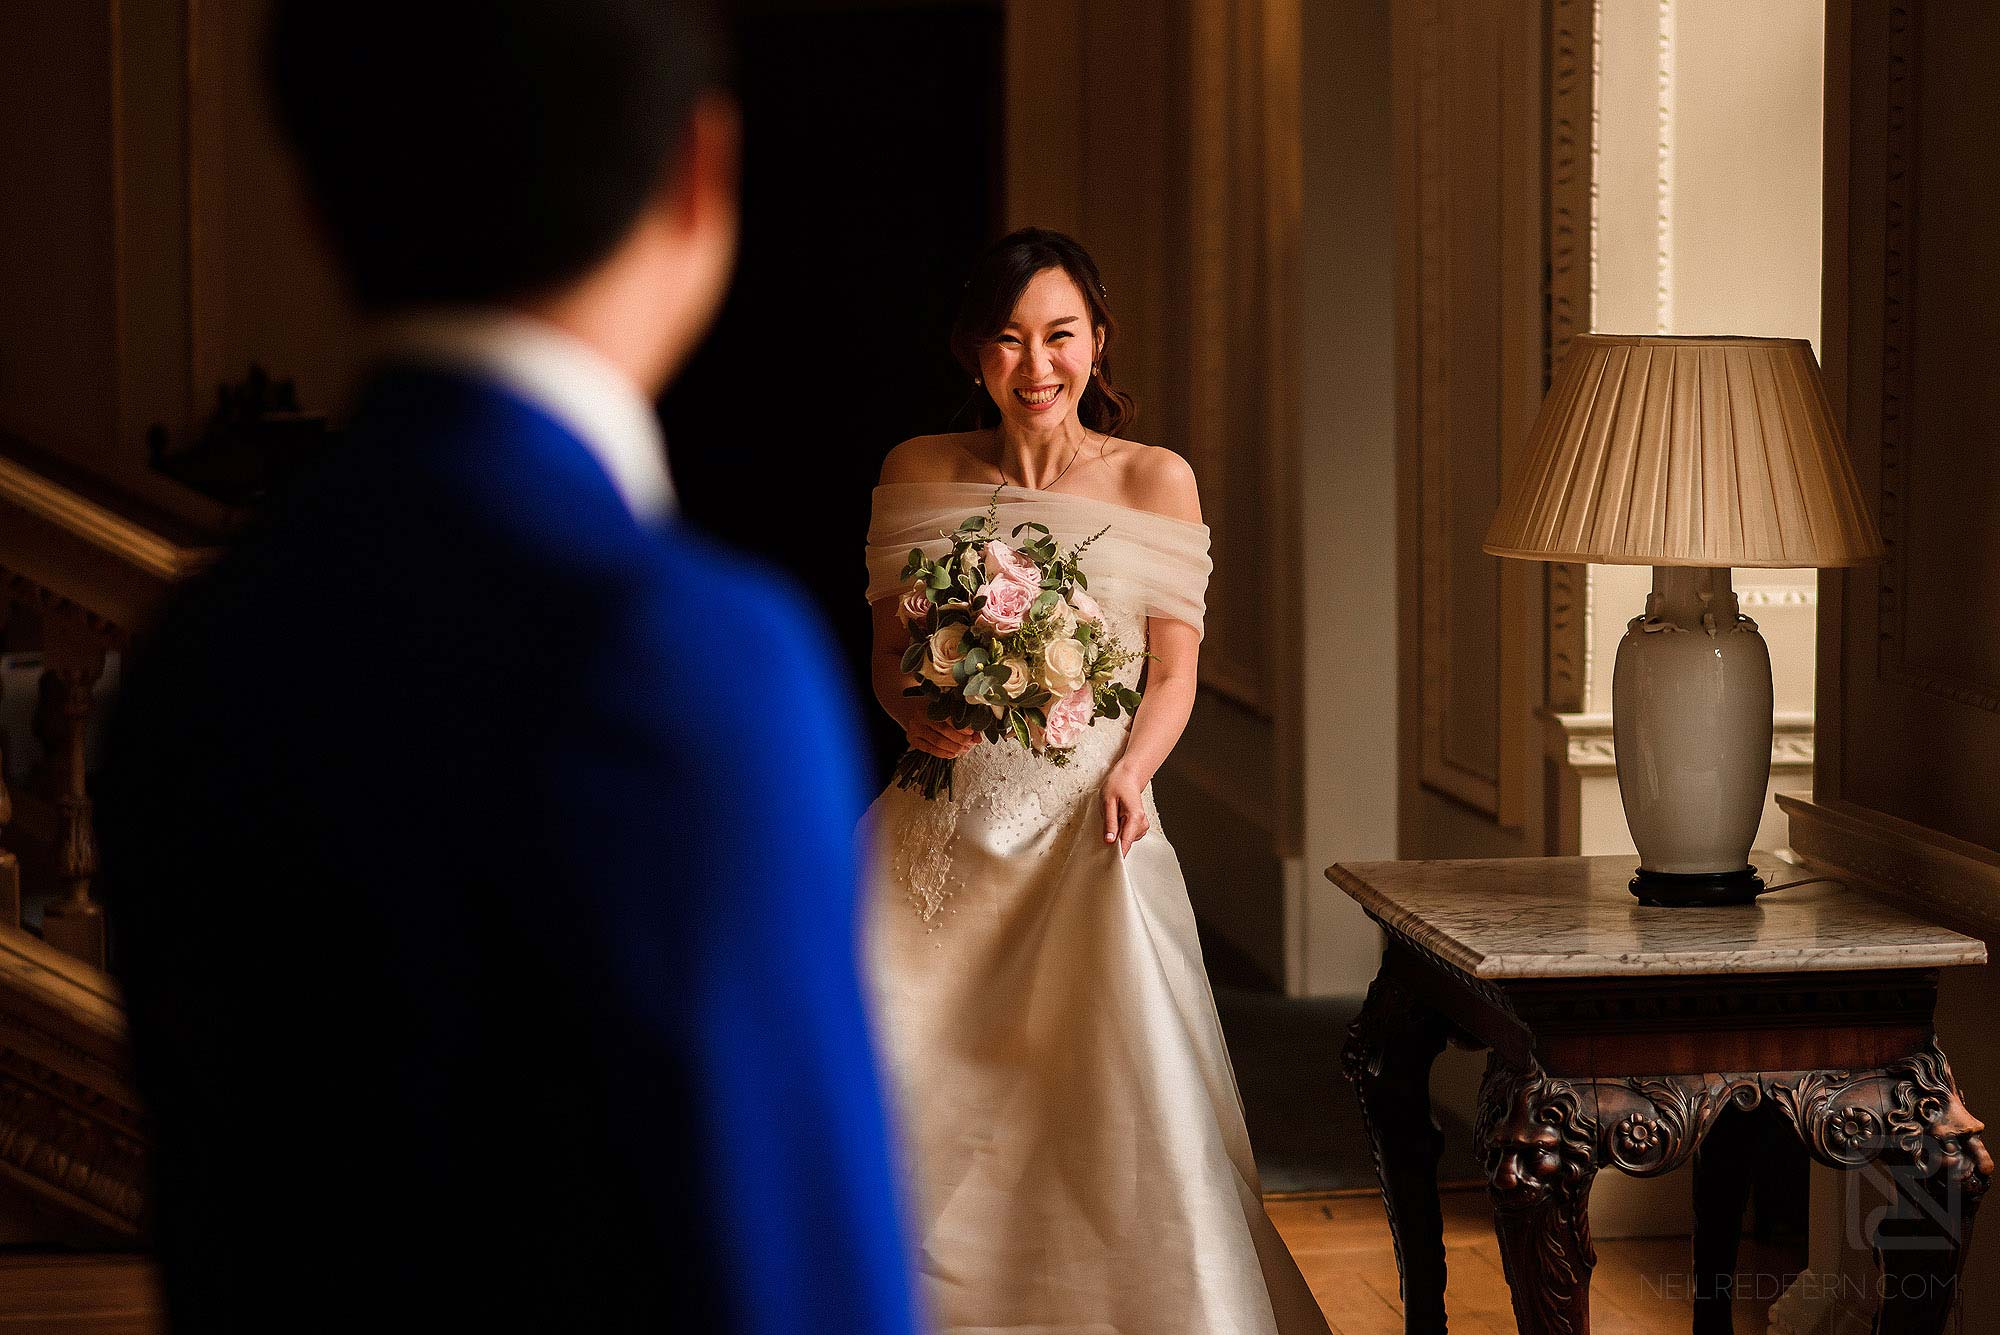 Chinese bride seeing groom for first time during first look